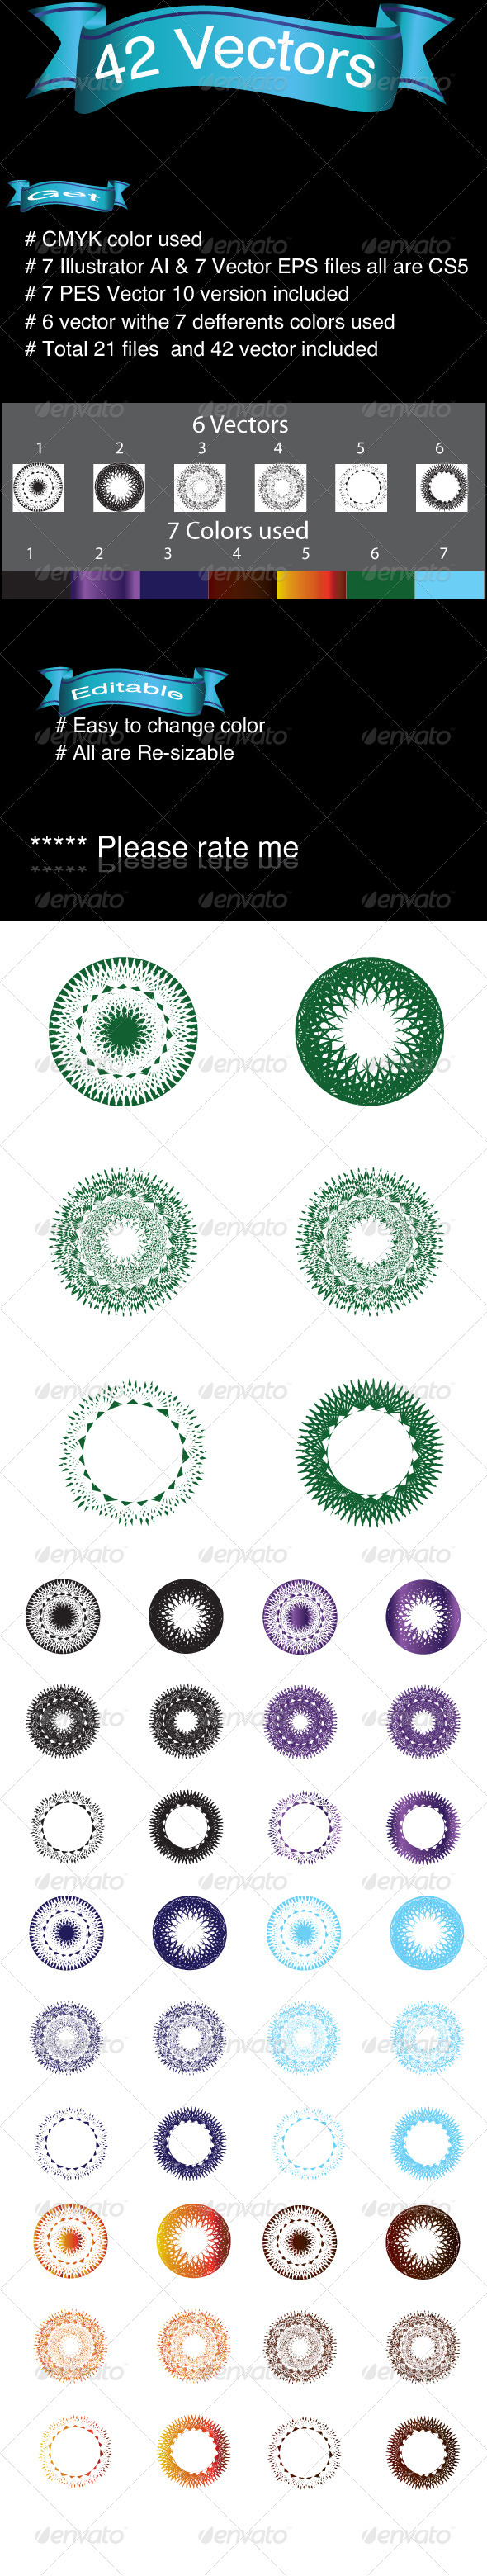 42 Vectors - Flourishes / Swirls Decorative